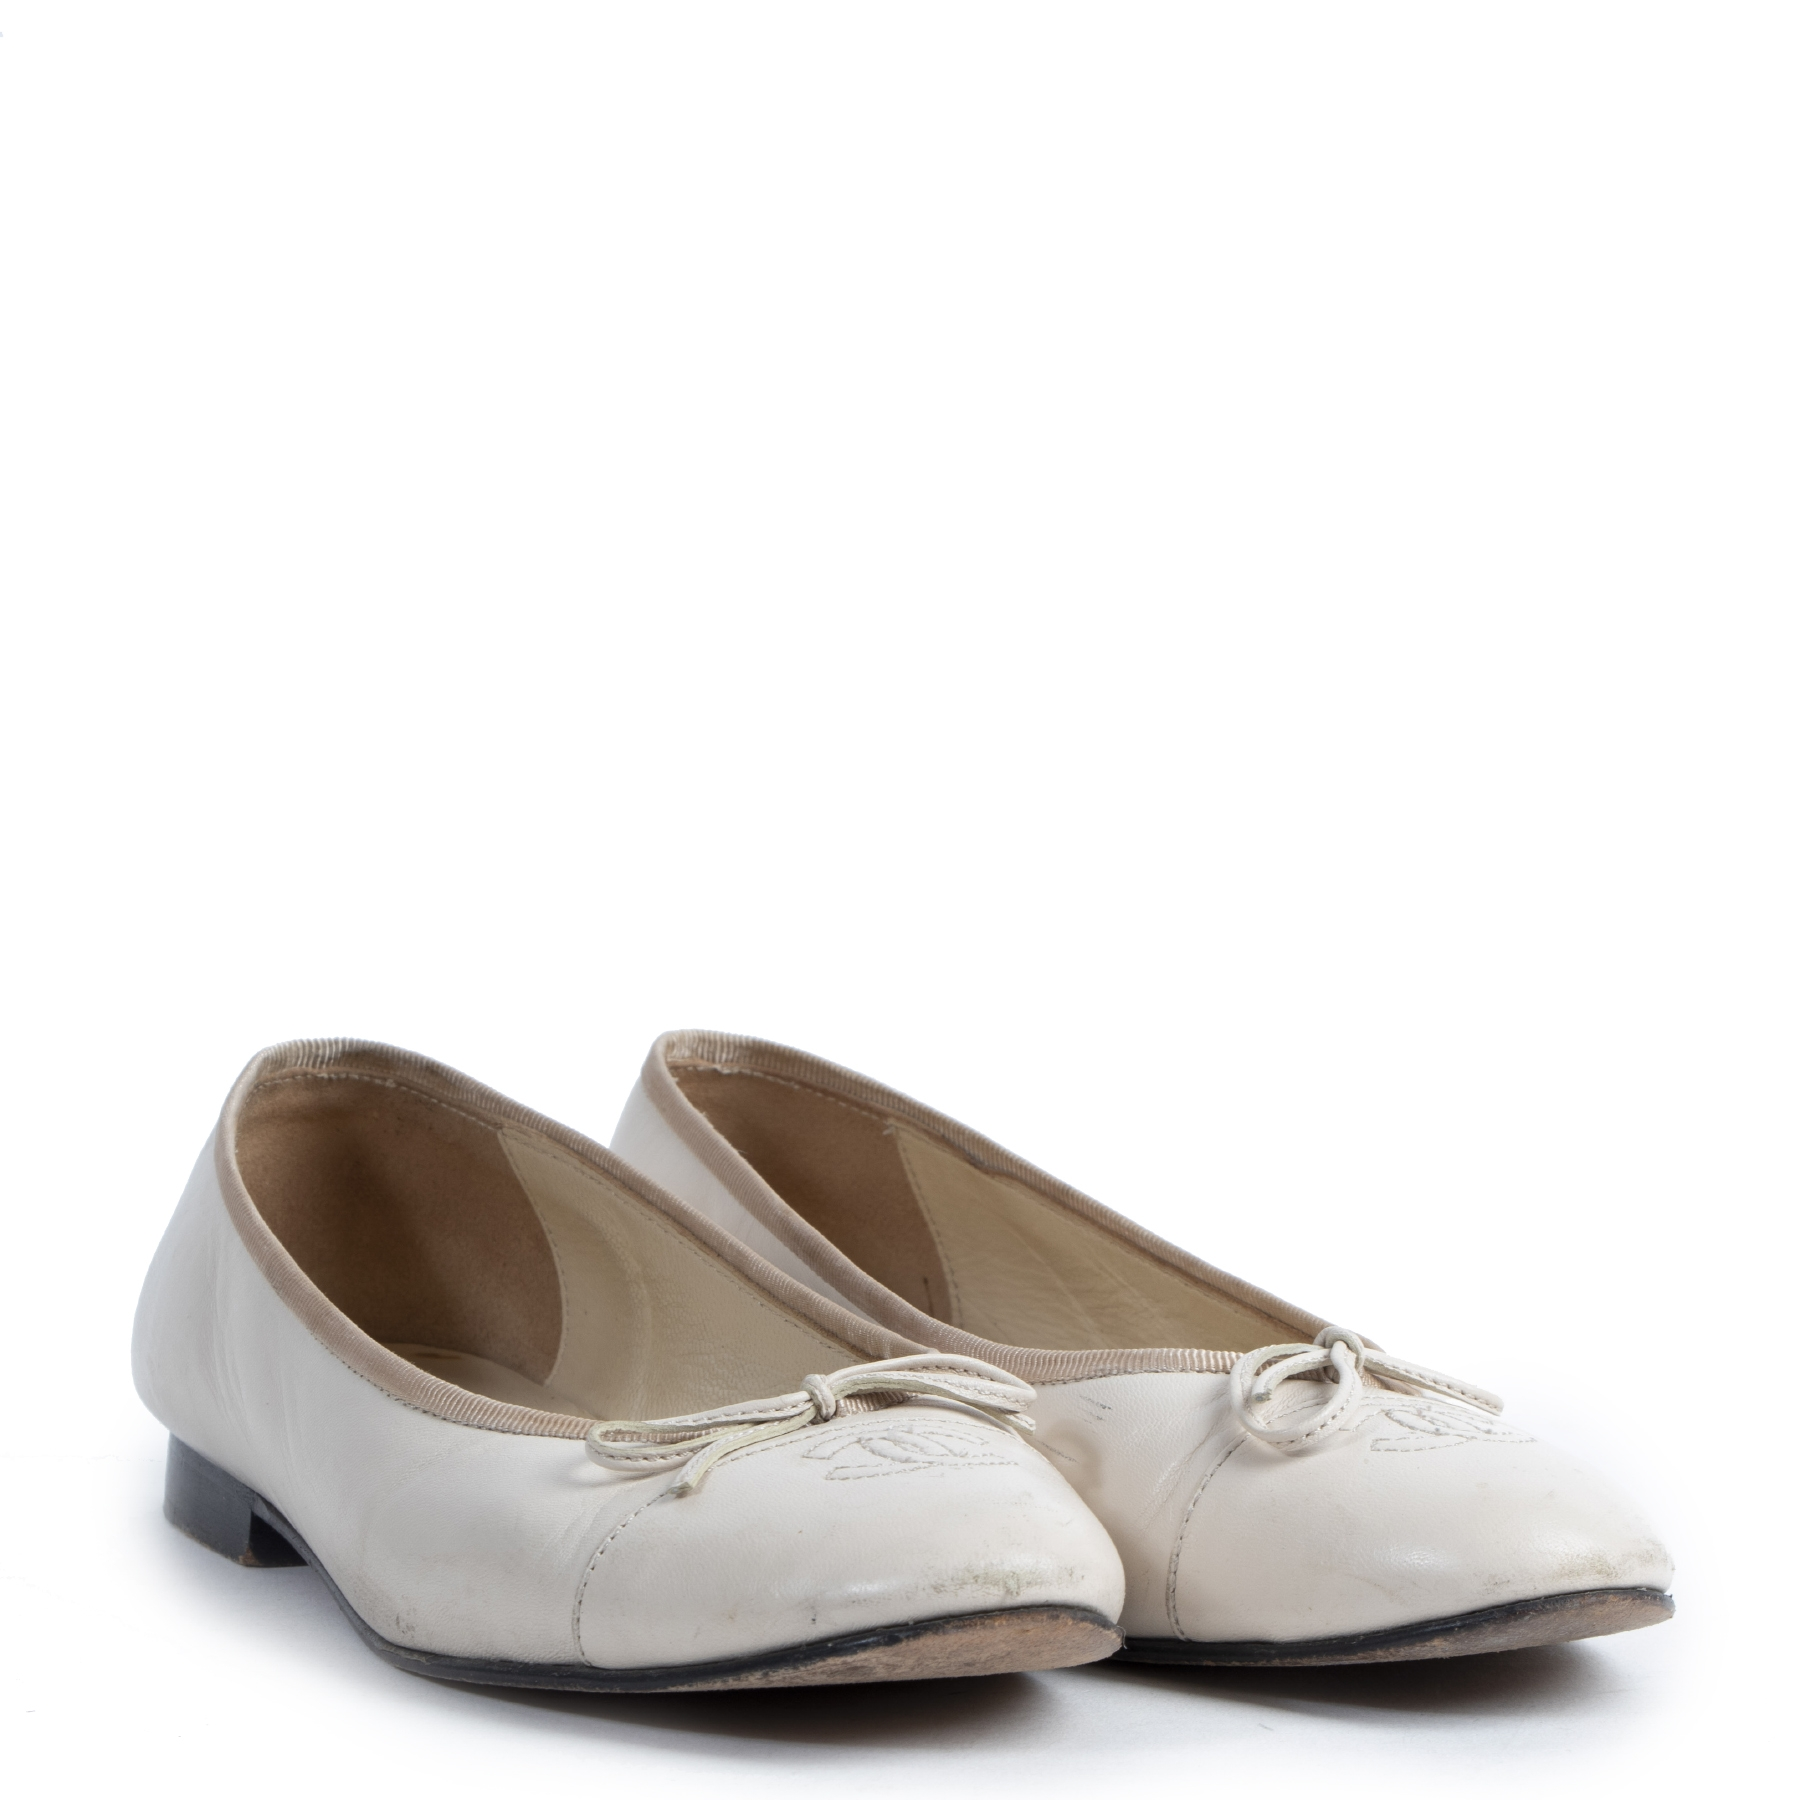 Chanel Cream Patent Leather Bow Ballerinas